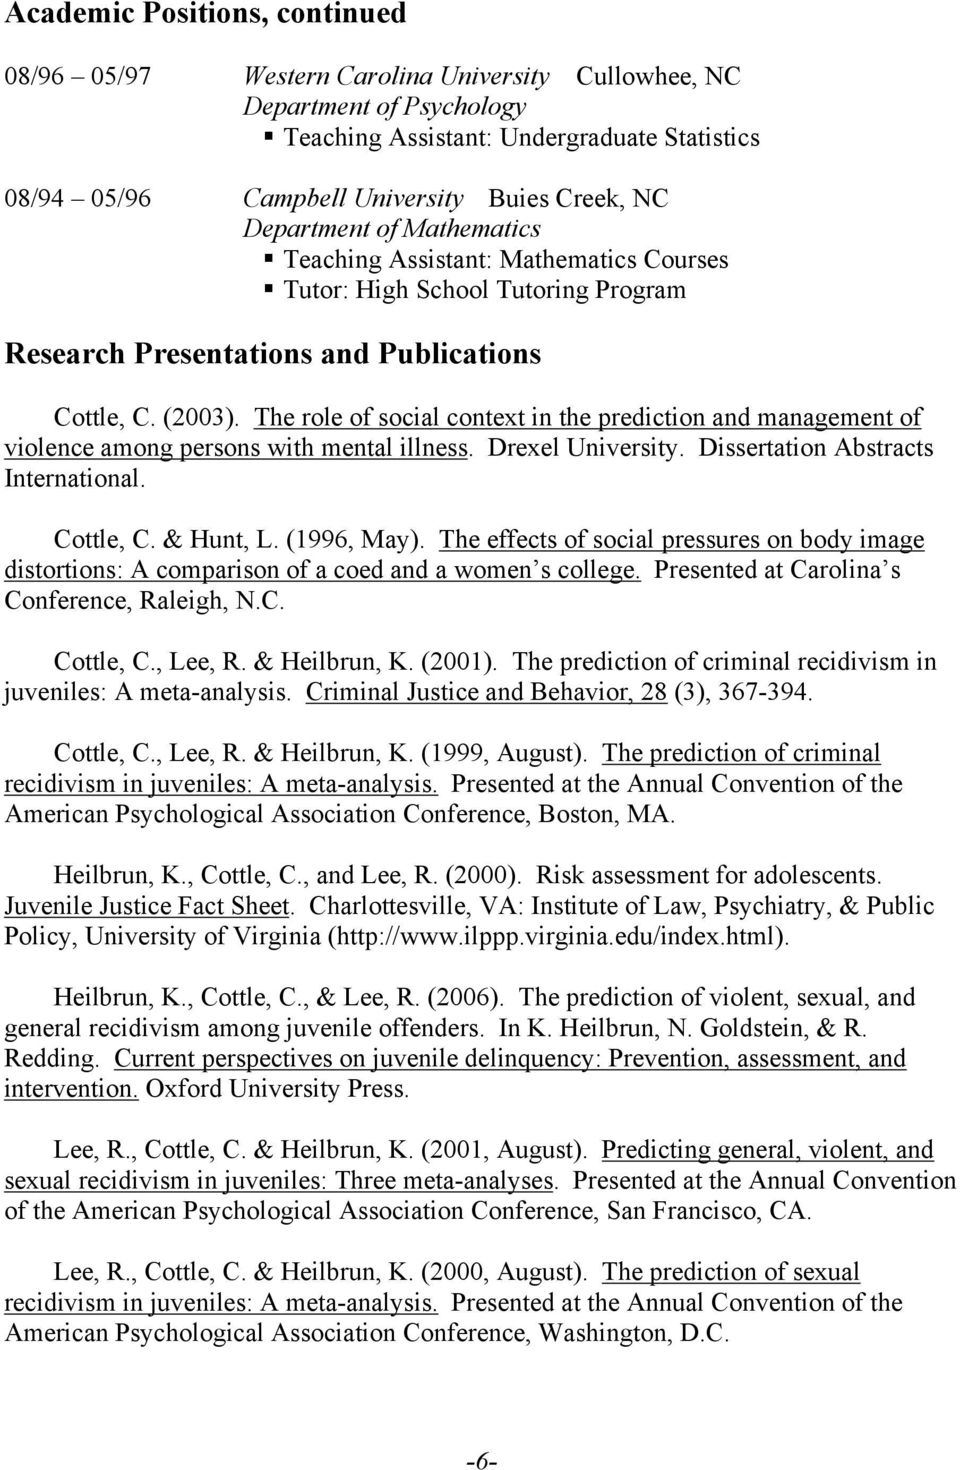 The role of social context in the prediction and management of violence among persons with mental illness. Drexel University. Dissertation Abstracts International. Cottle, C. & Hunt, L. (1996, May).